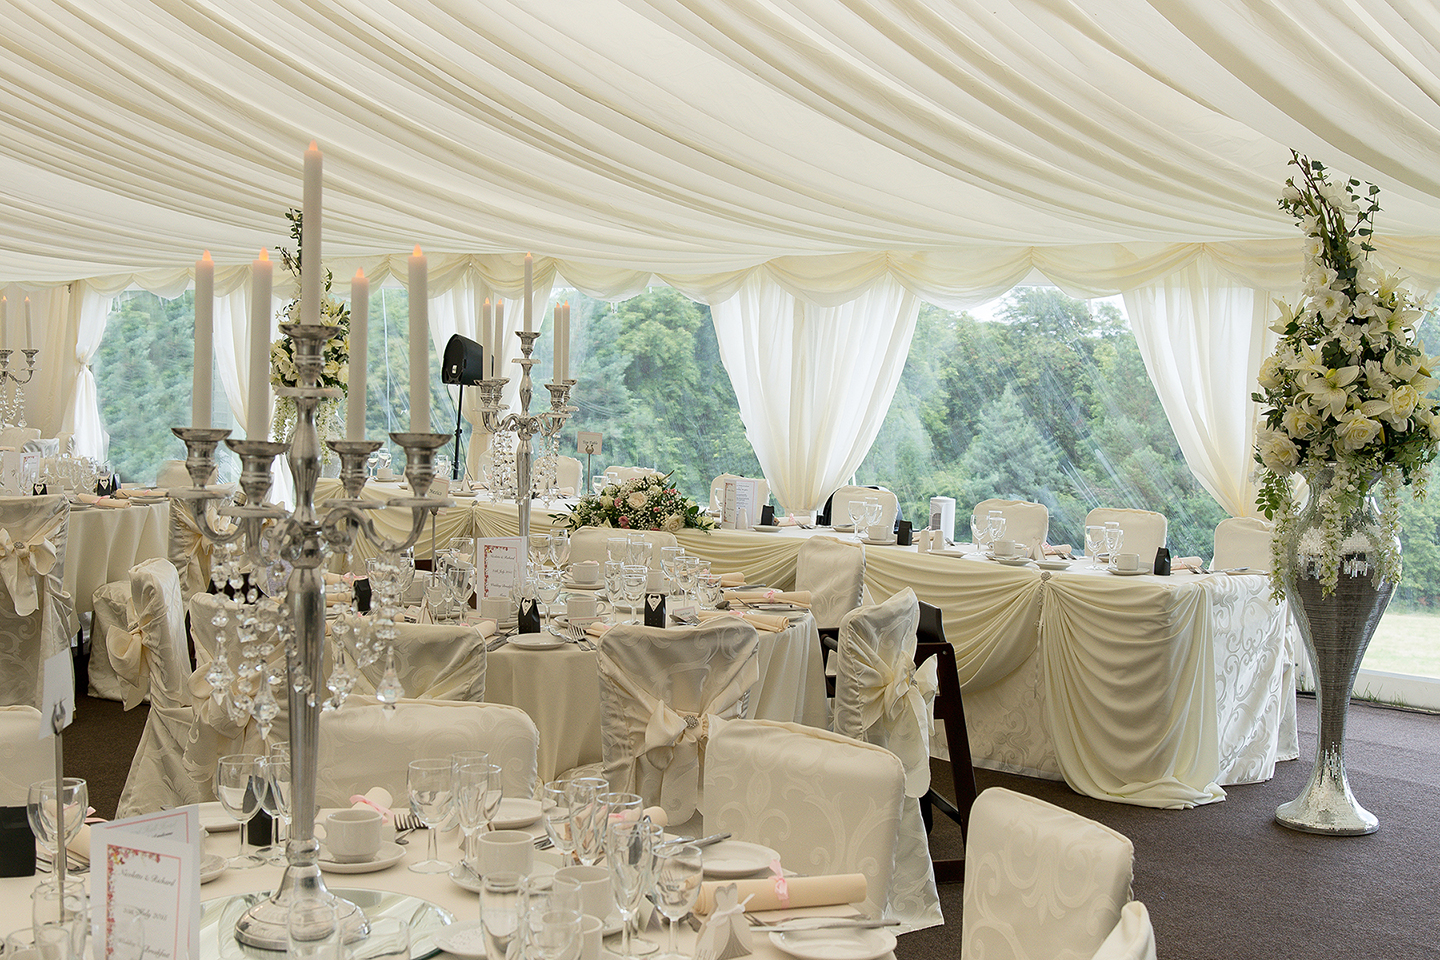 Superb Derbyshire summer garden wedding marque